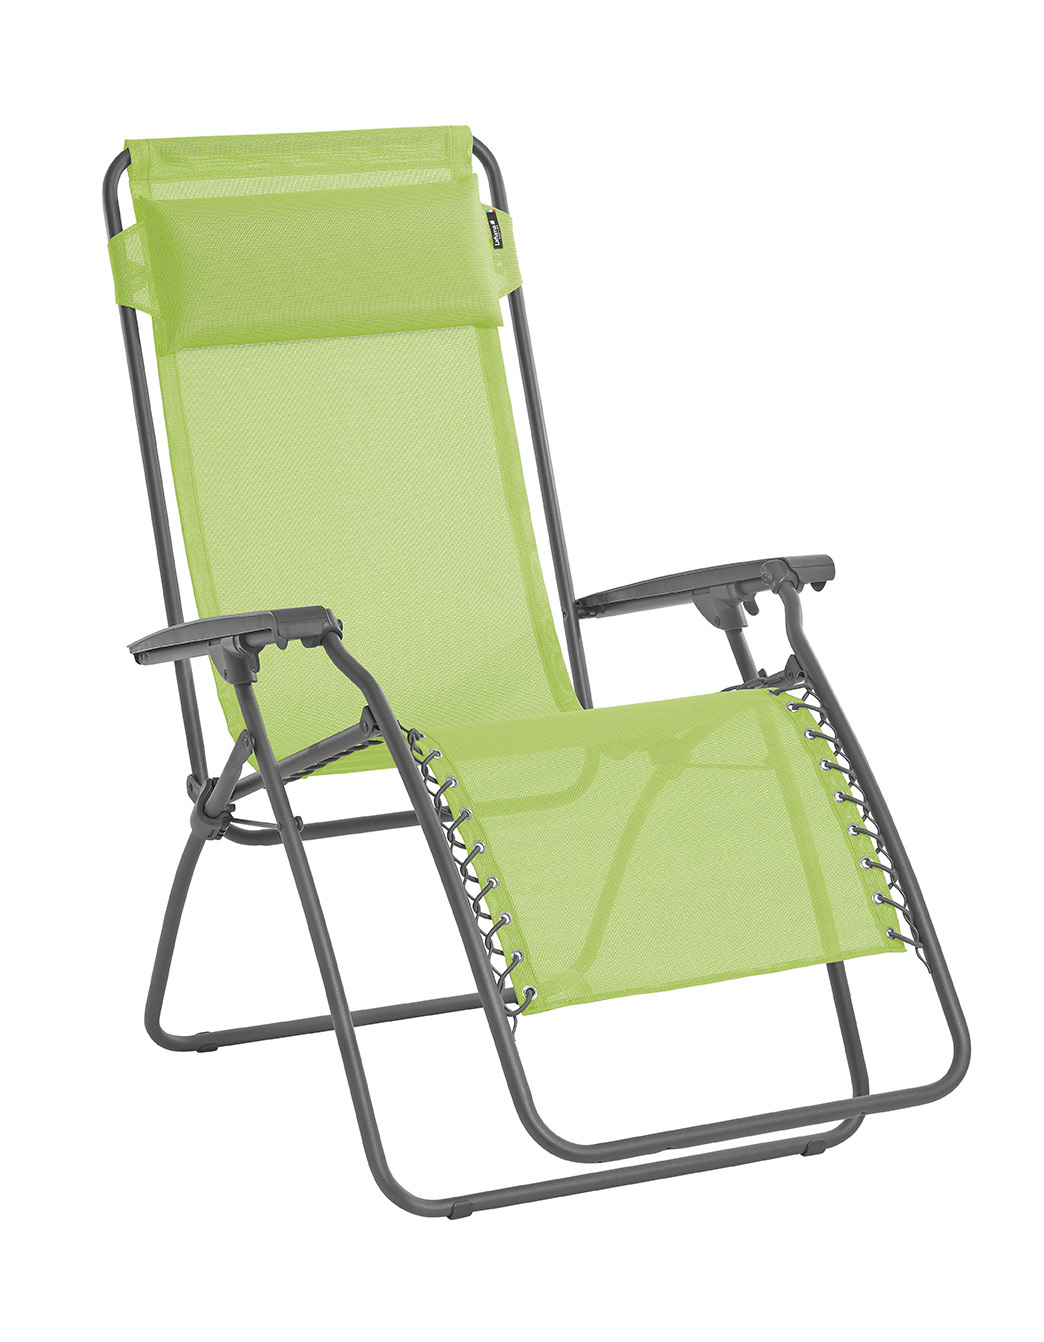 Chaise Relaxe Chaise Longue Relax Rt2 Texplast Vert Pomme